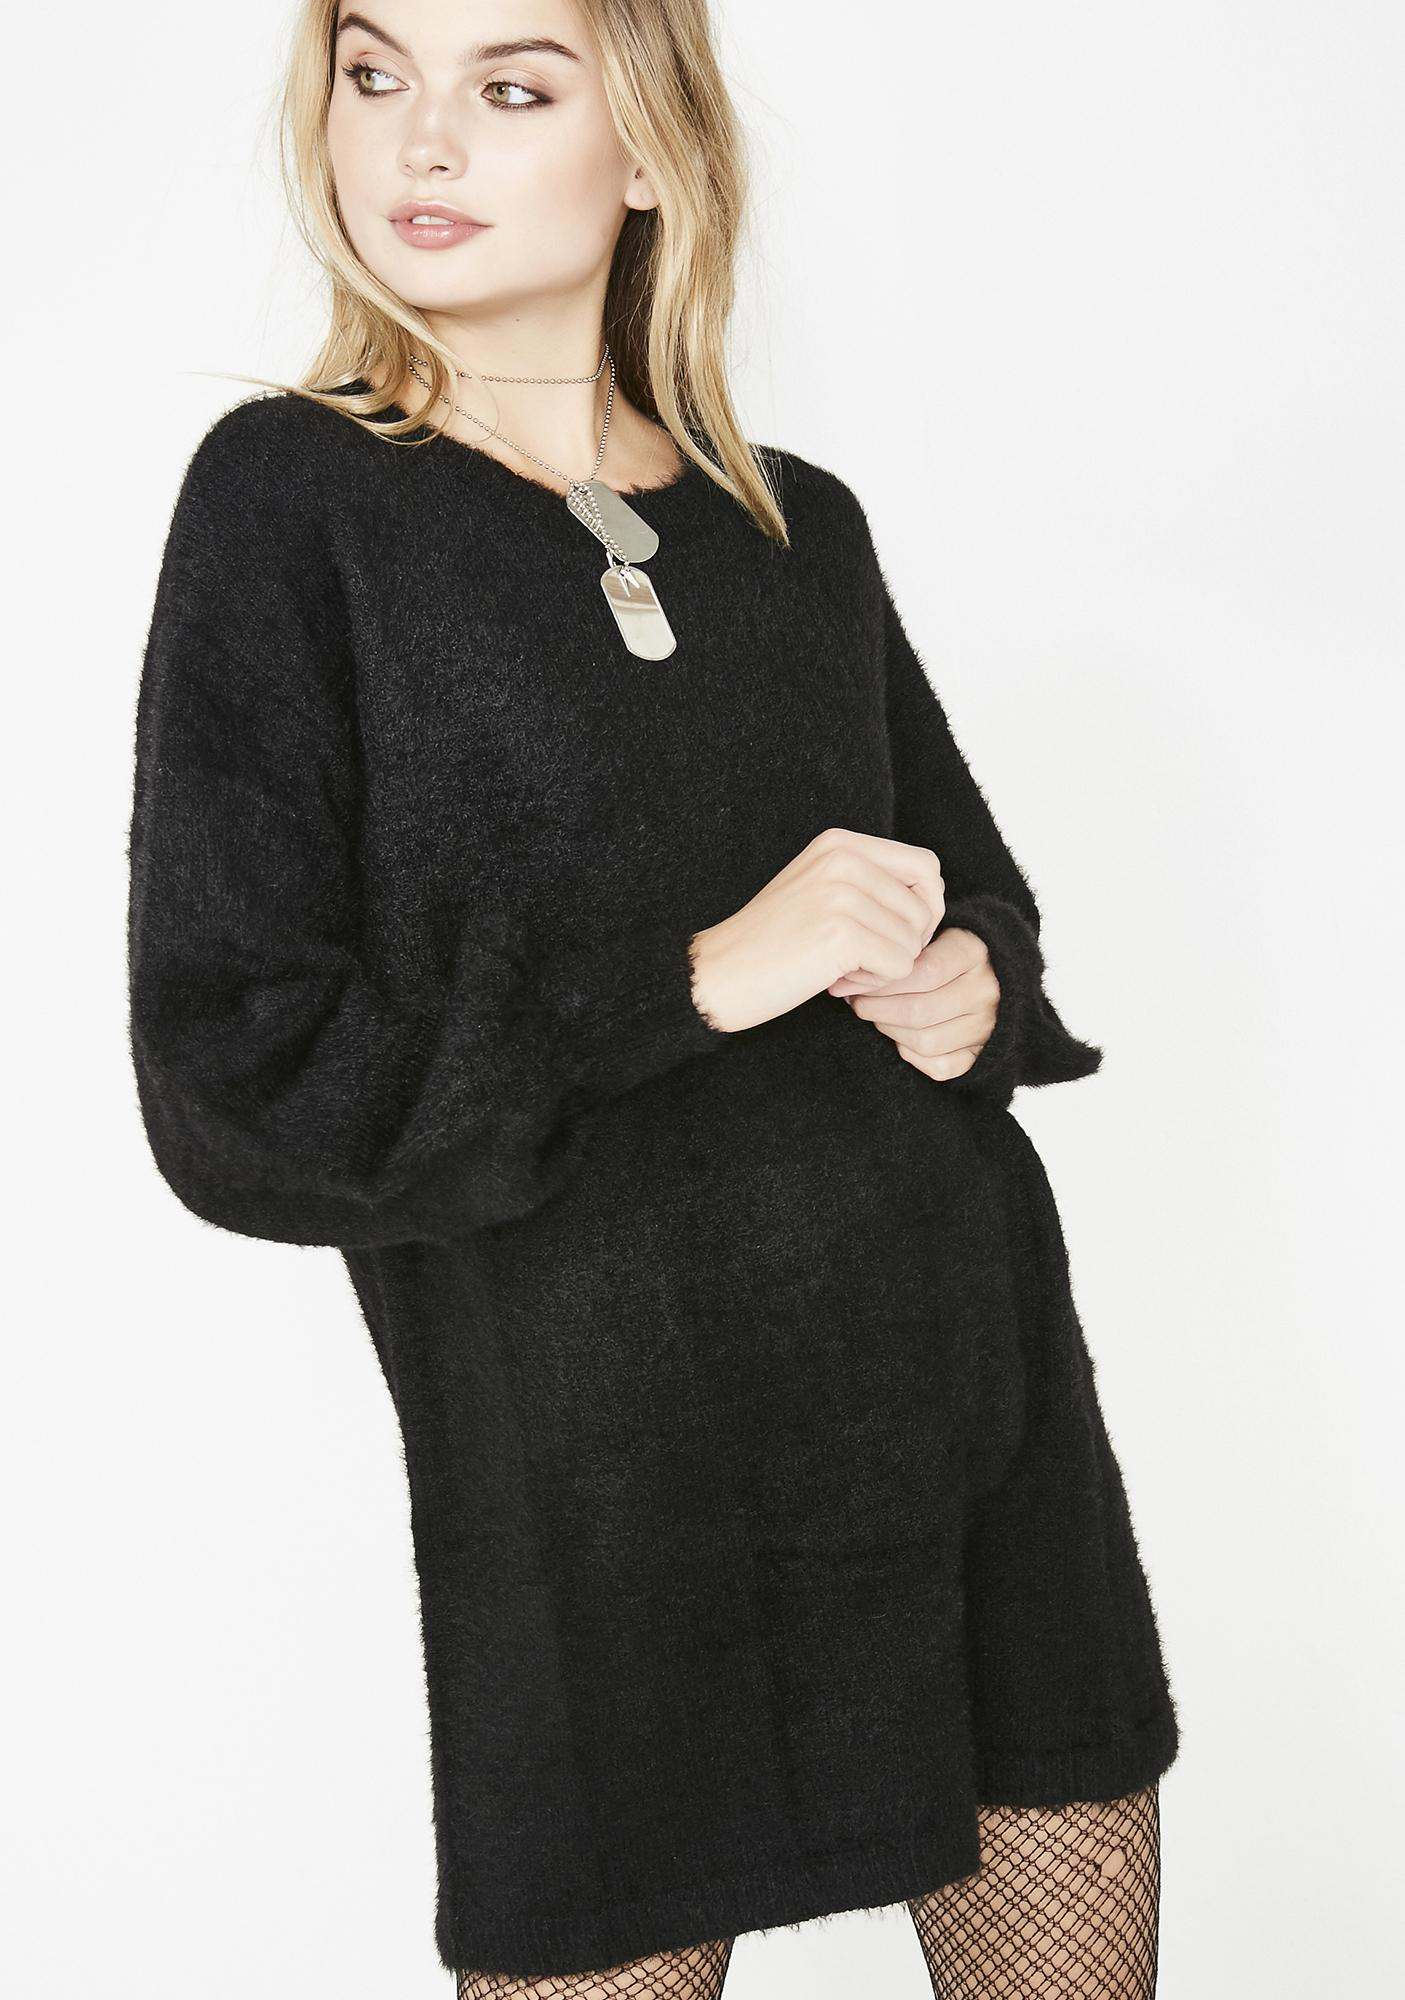 Halcyon Days Sweater Dress